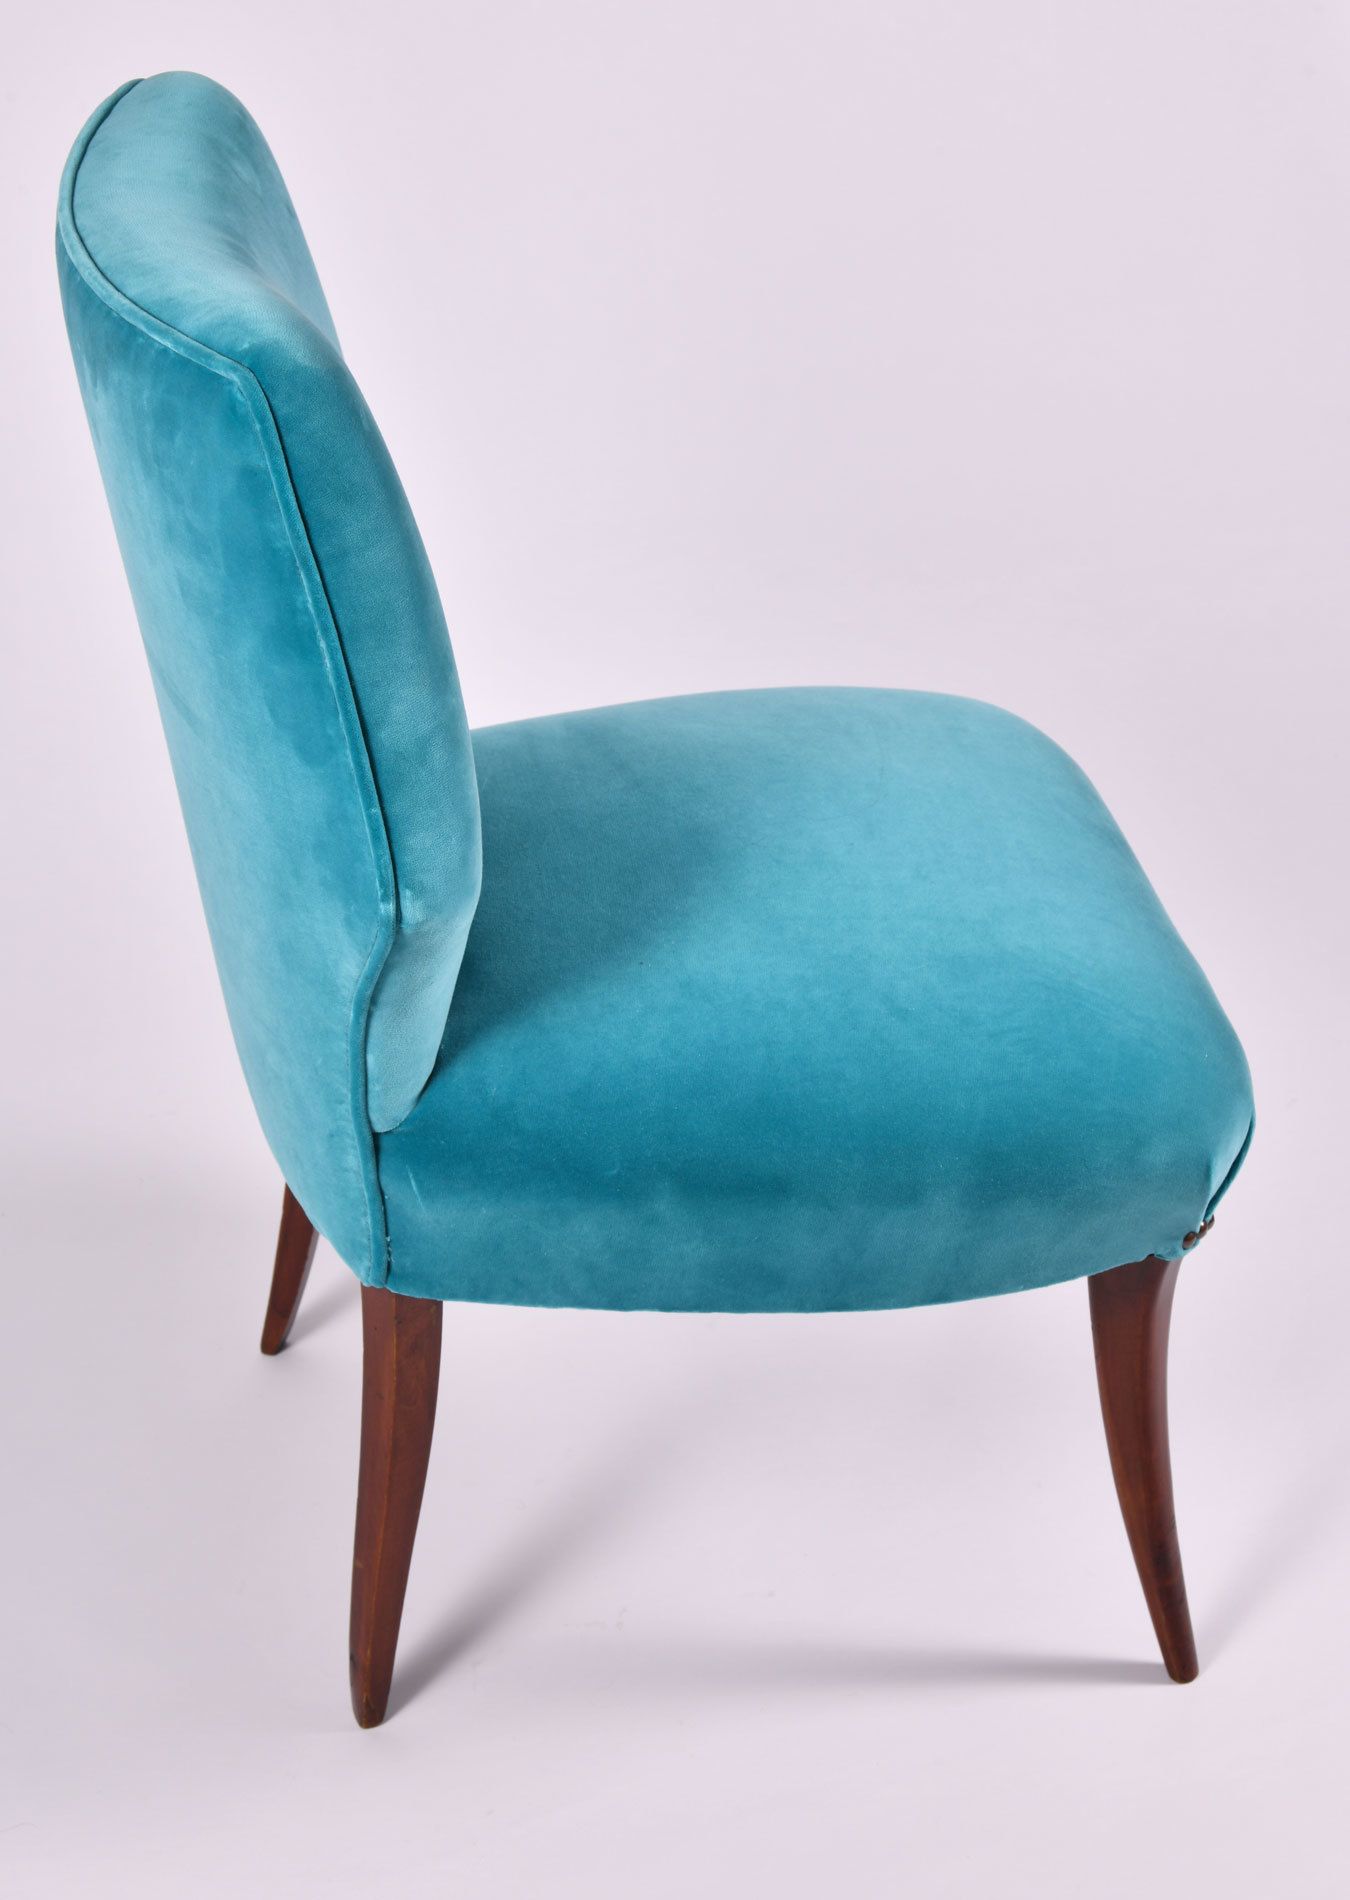 The image for Pair Turquoise Velvet Chairs 07